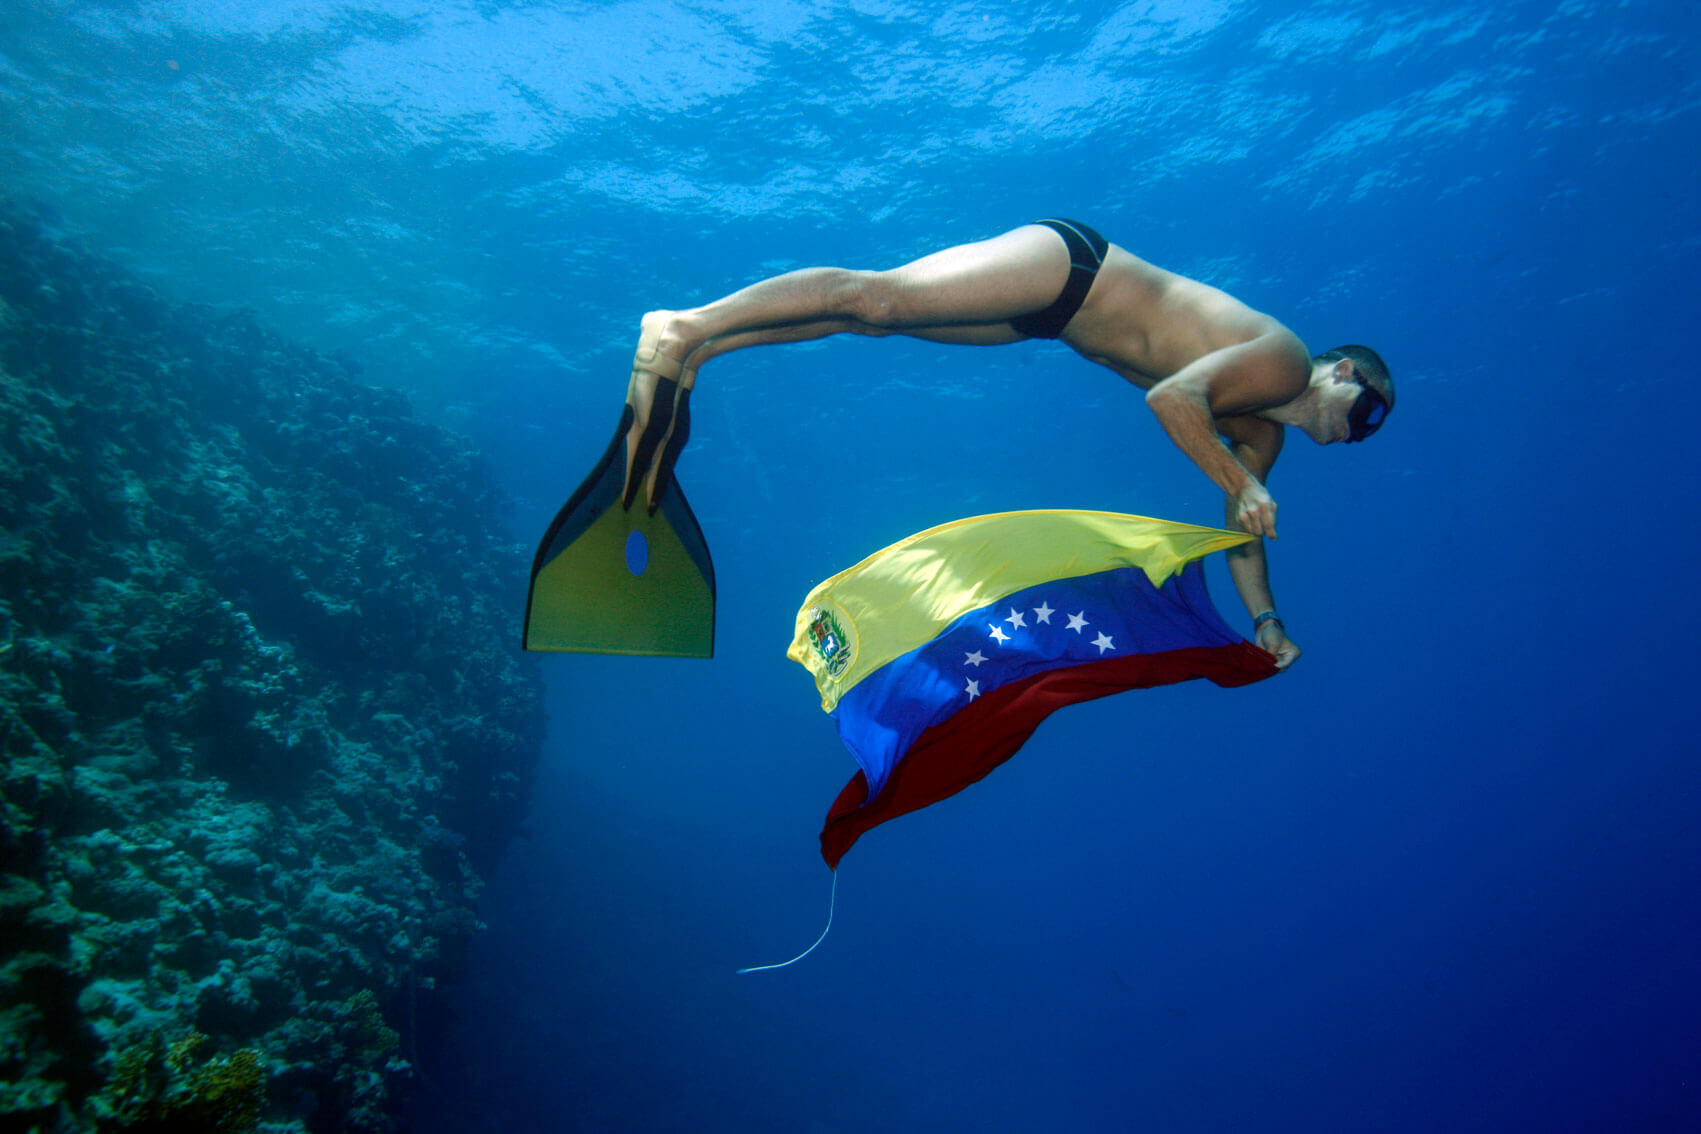 Carlos Coste Legendary Freediver - Deepsea Freediving